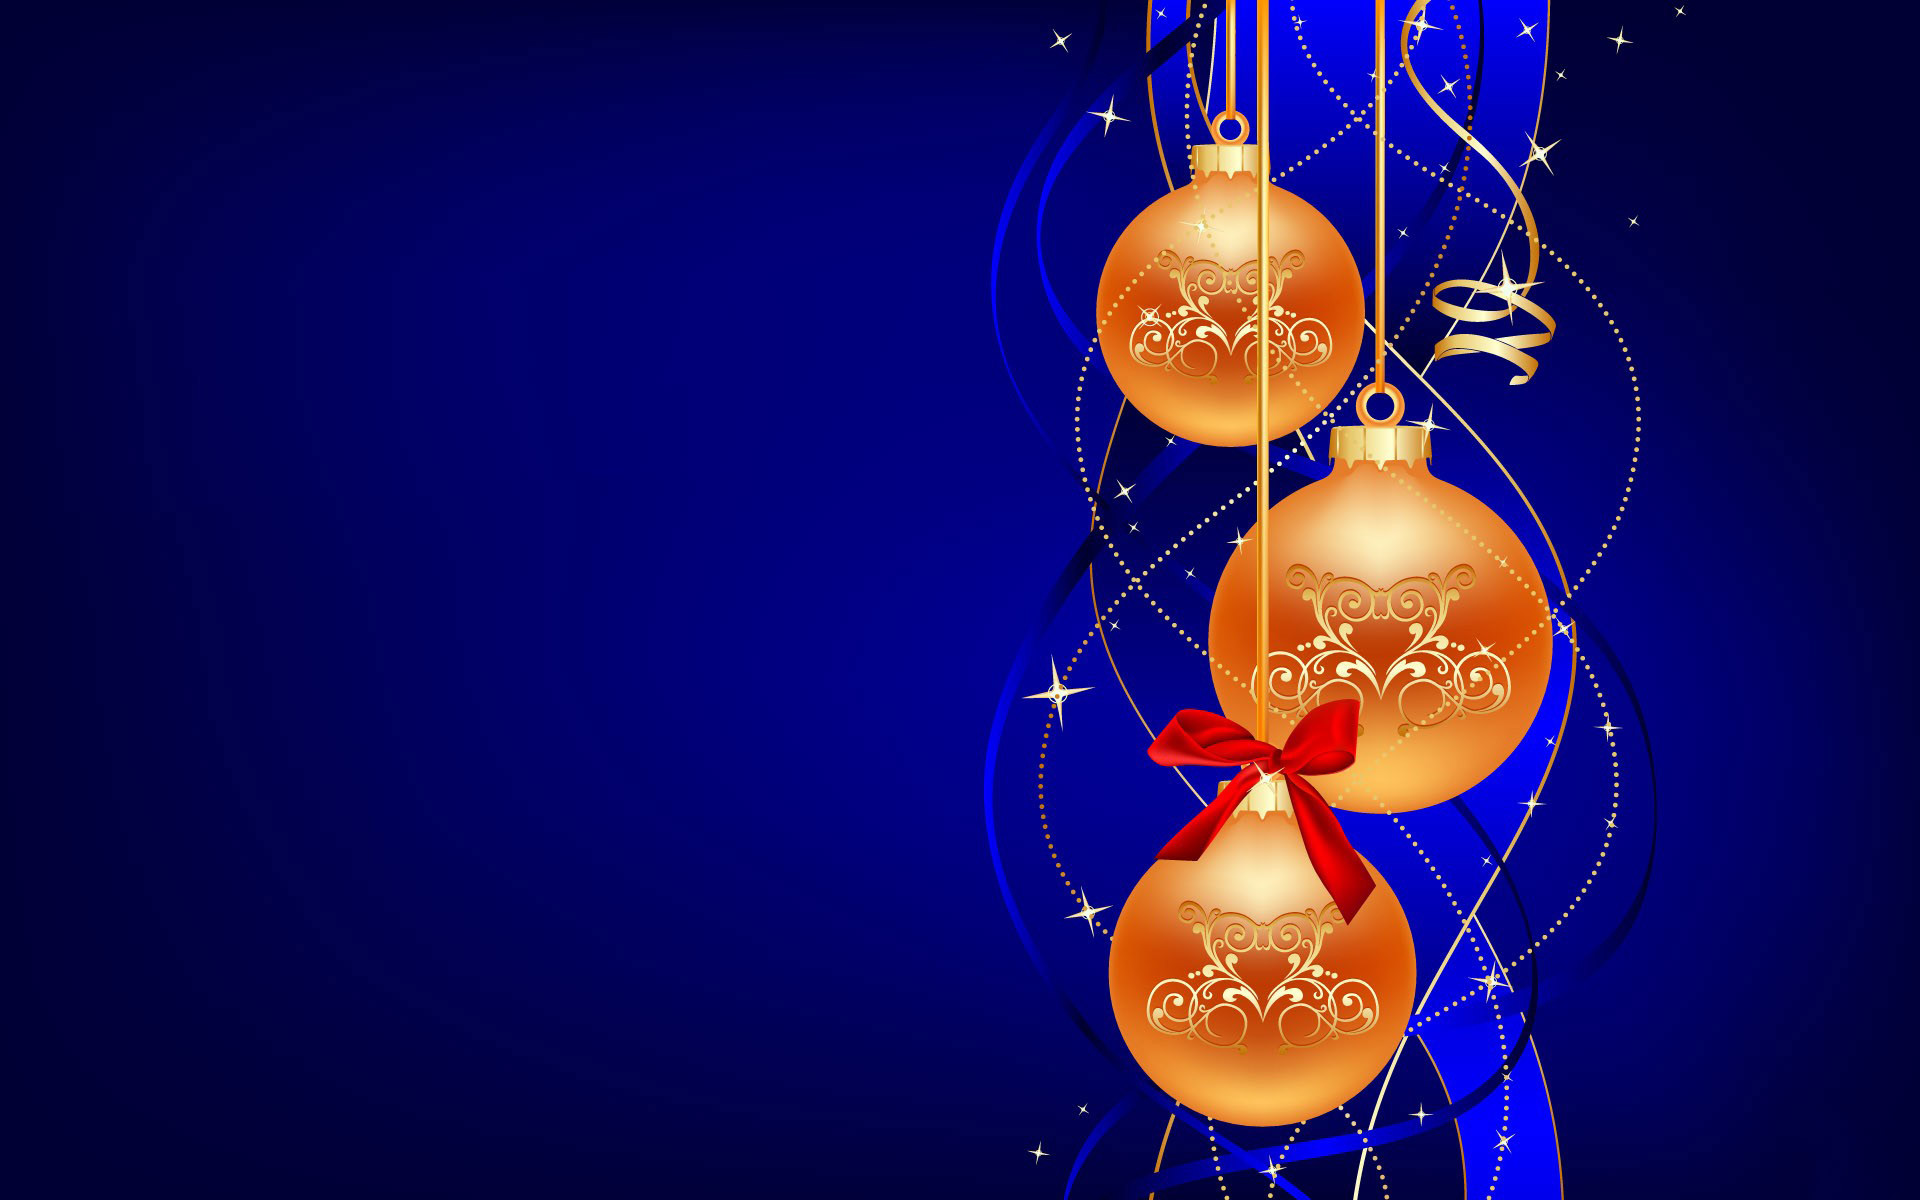 100 Christmas Background Images Free Download